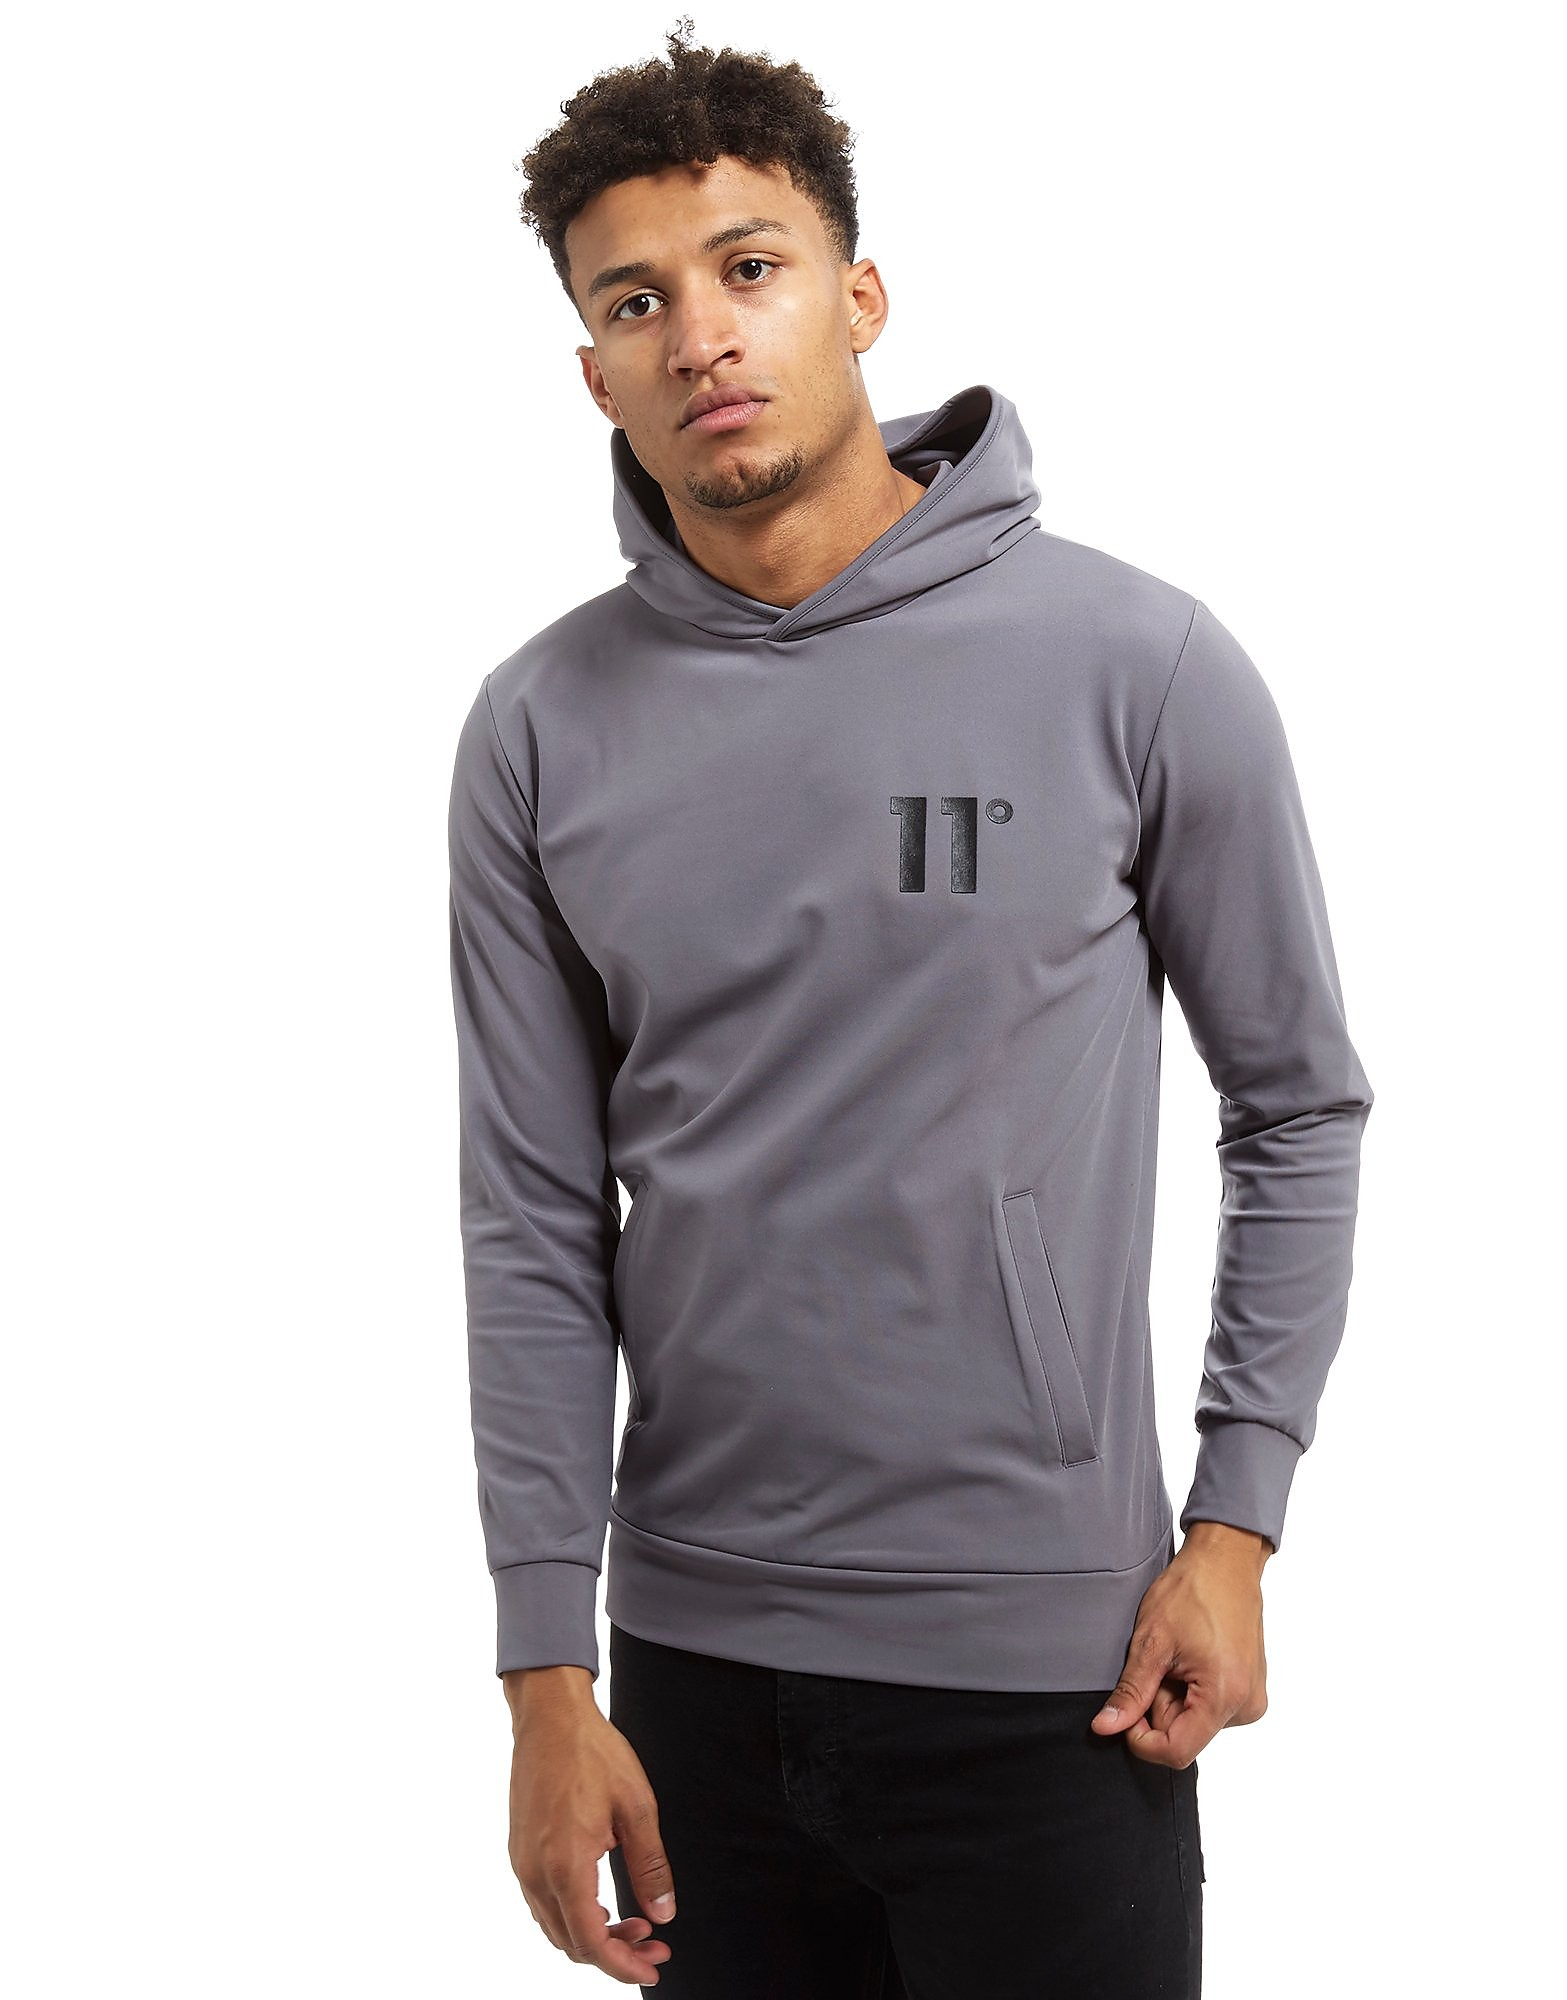 Image de 11 Degrees Sweat Core Poly Homme - Charcoal, Charcoal